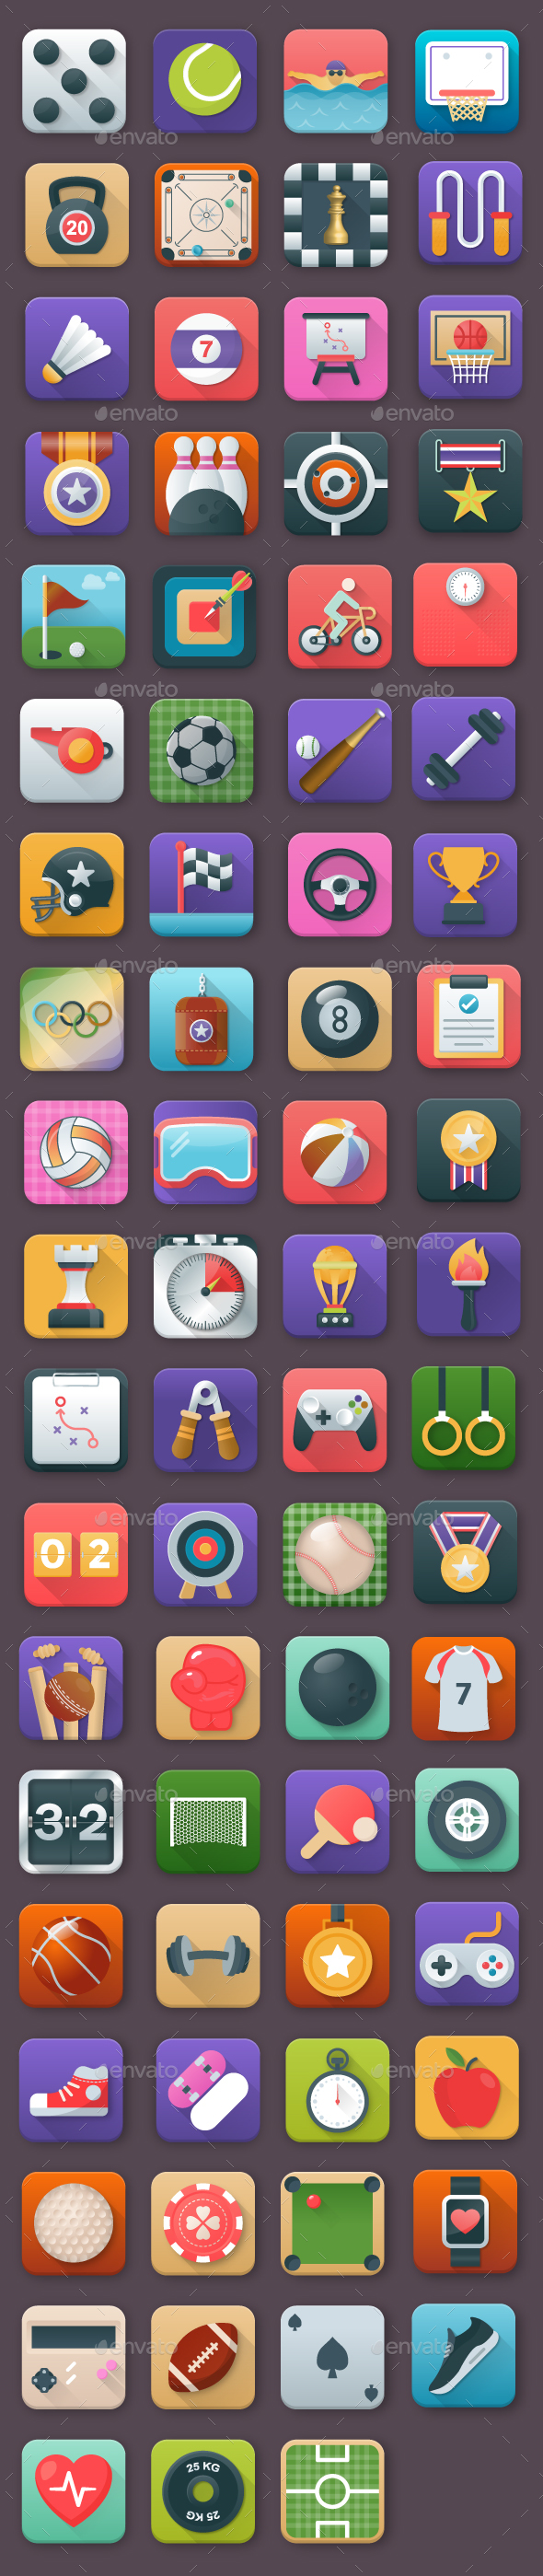 75 Sports App Icons - Icons